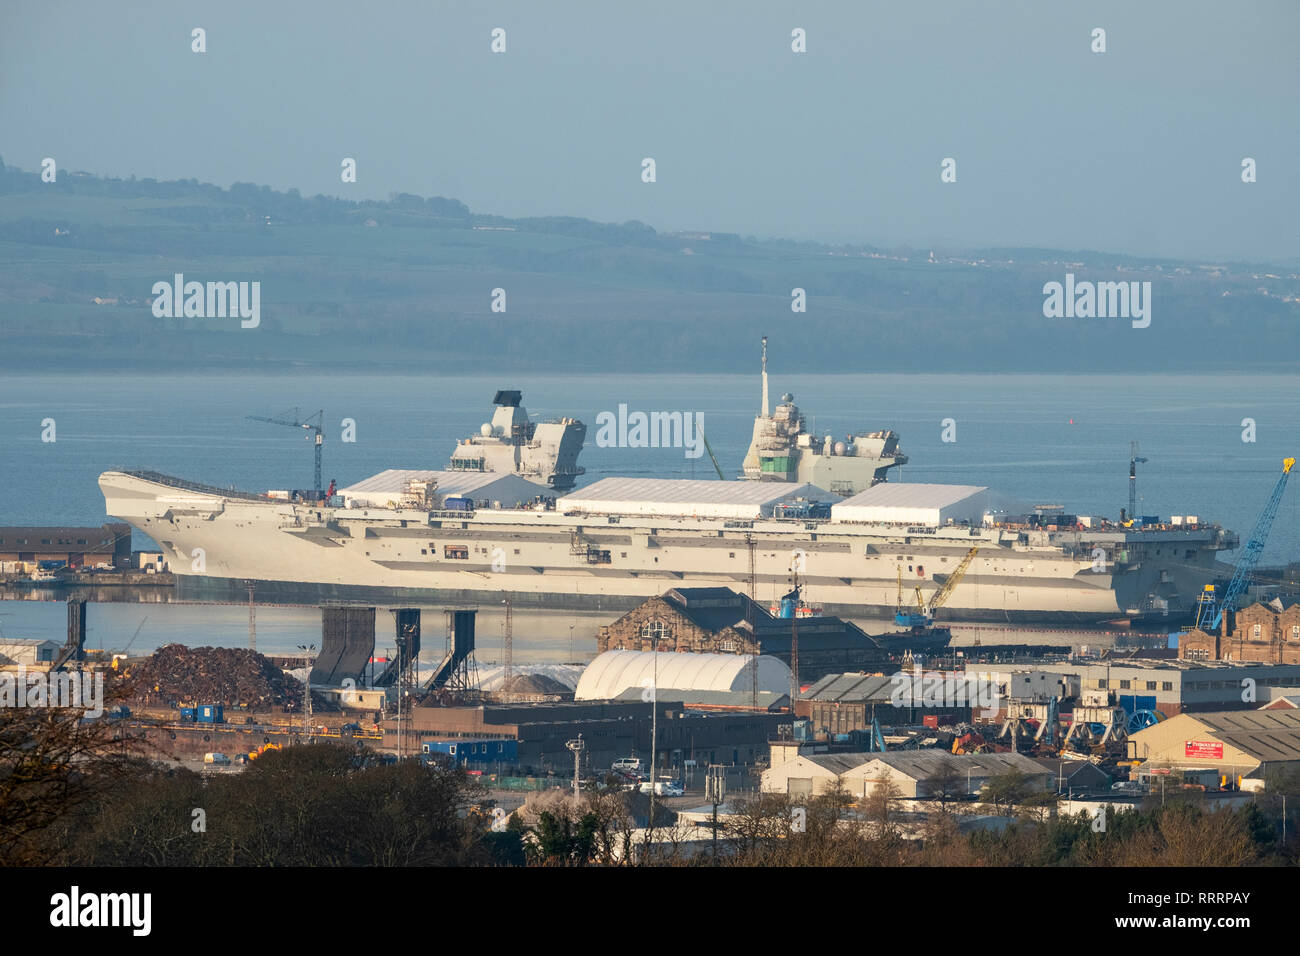 HMS Prince of Wales aircraft carrier under construction for the Royal Navy at Rosyth Naval Dockyard, Fife, Scotland. - Stock Image